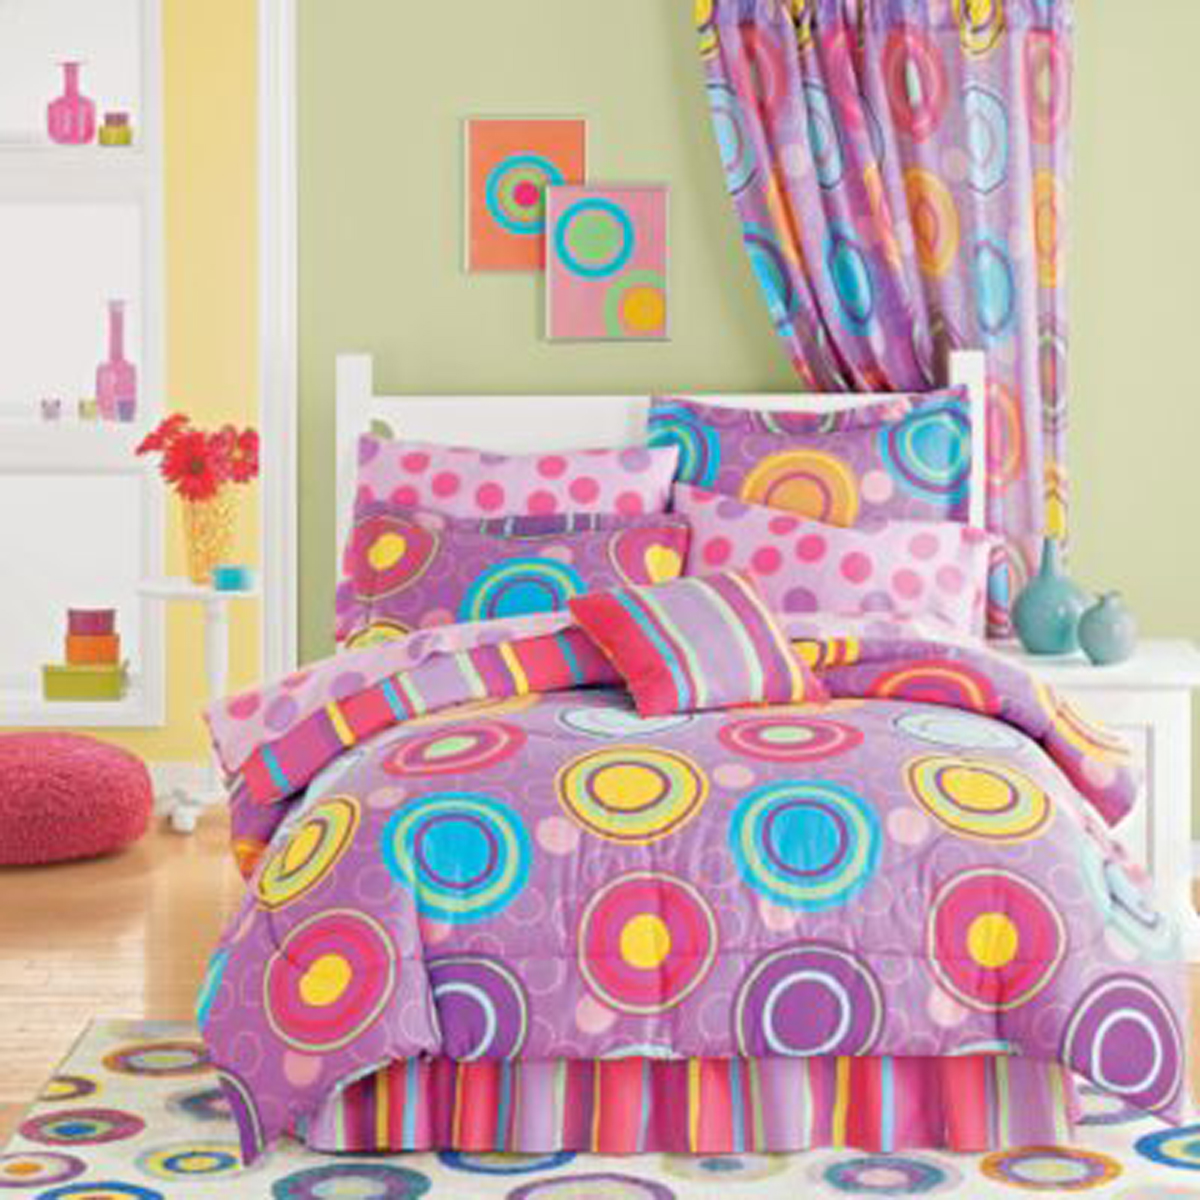 Decorating ideas for kids rooms decoration news - Room kids decoration ...